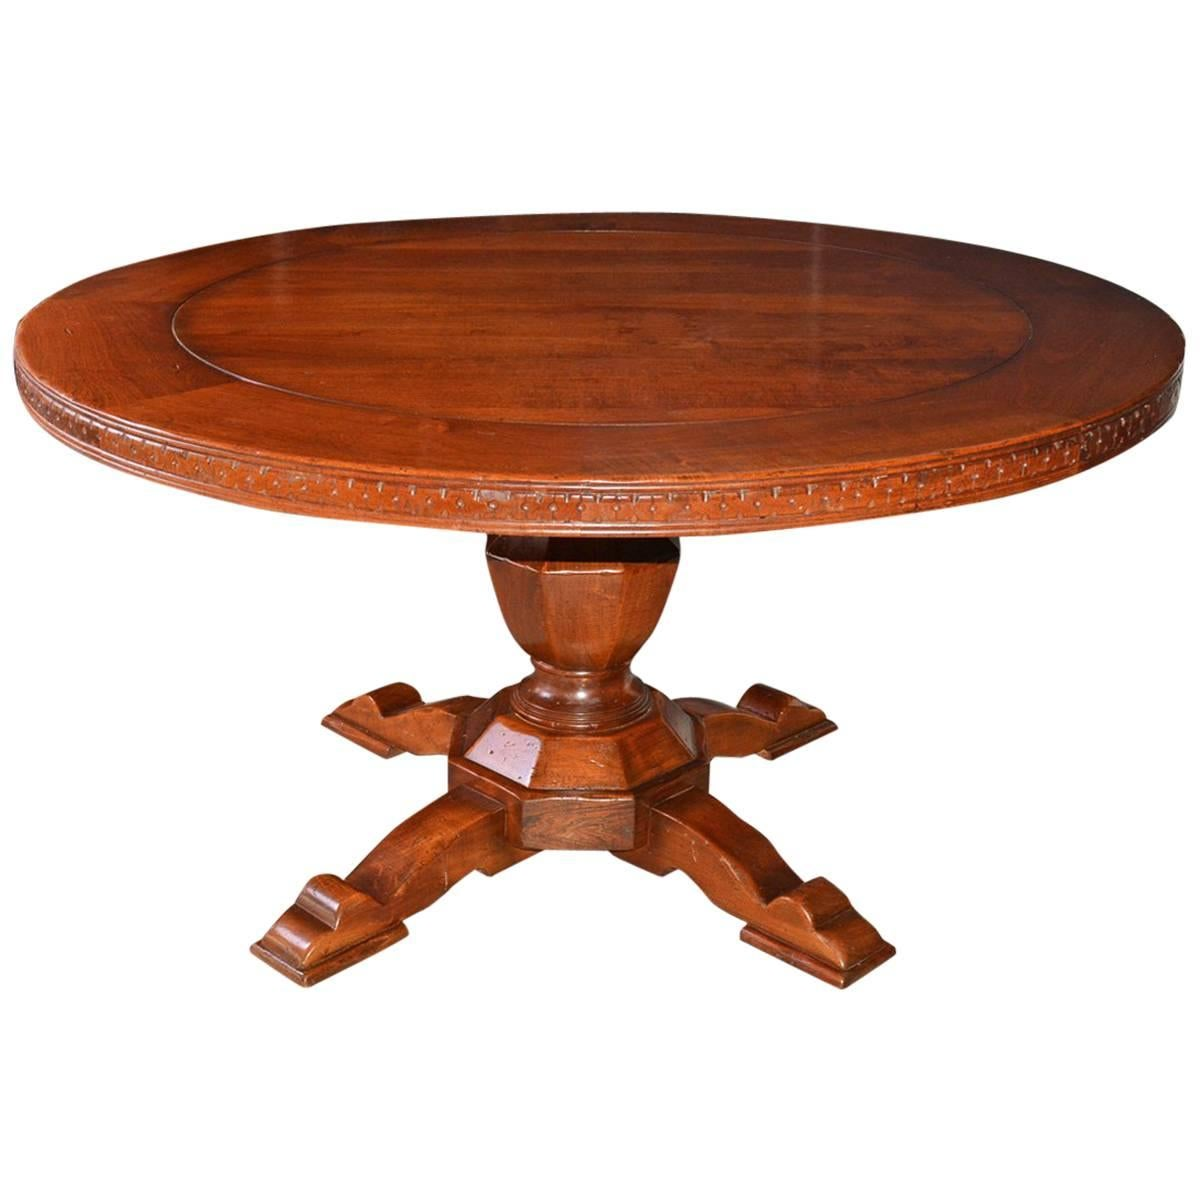 Vintage Round Wood Dining Or Conference Table For Sale